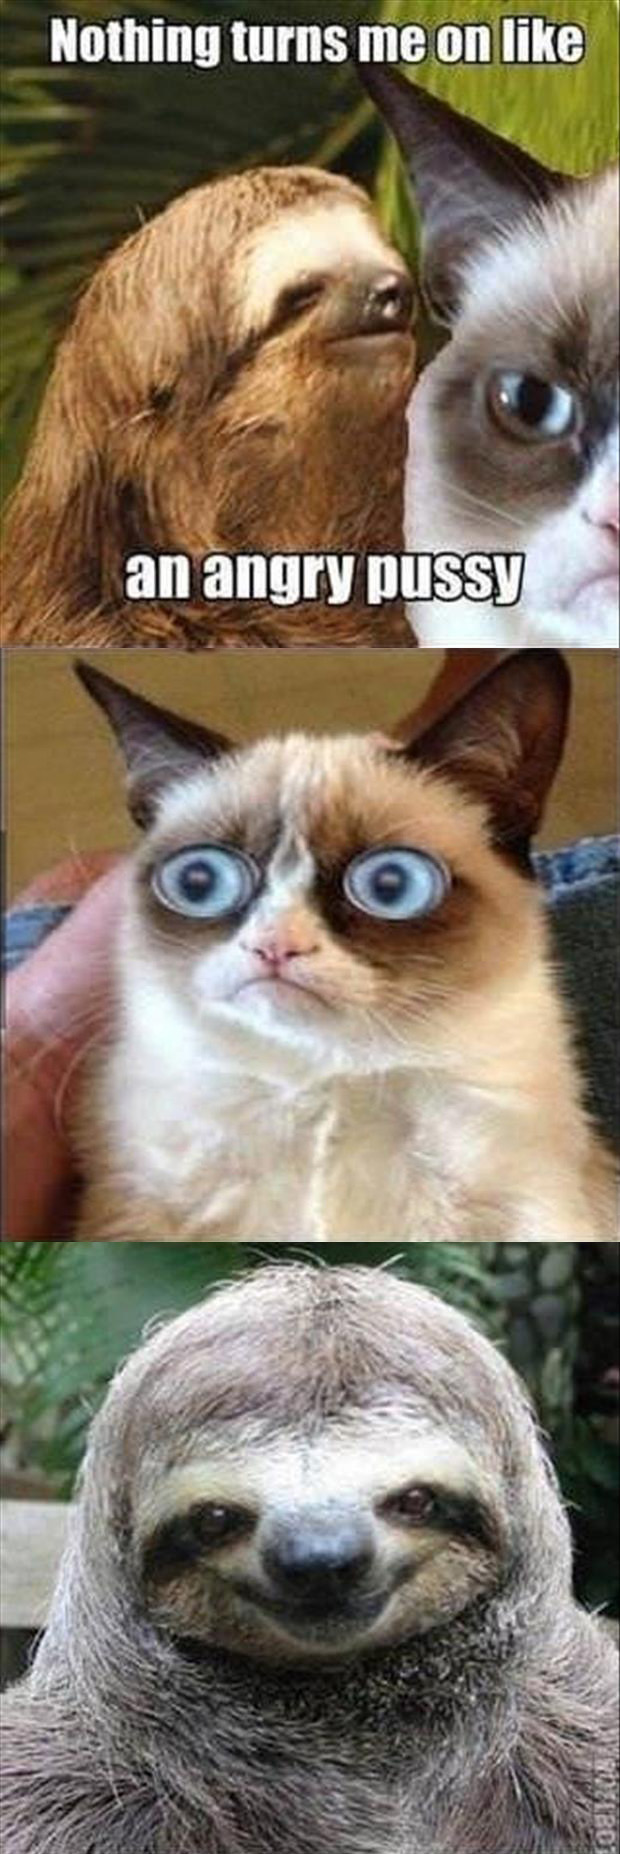 grumpy cat is not turned on